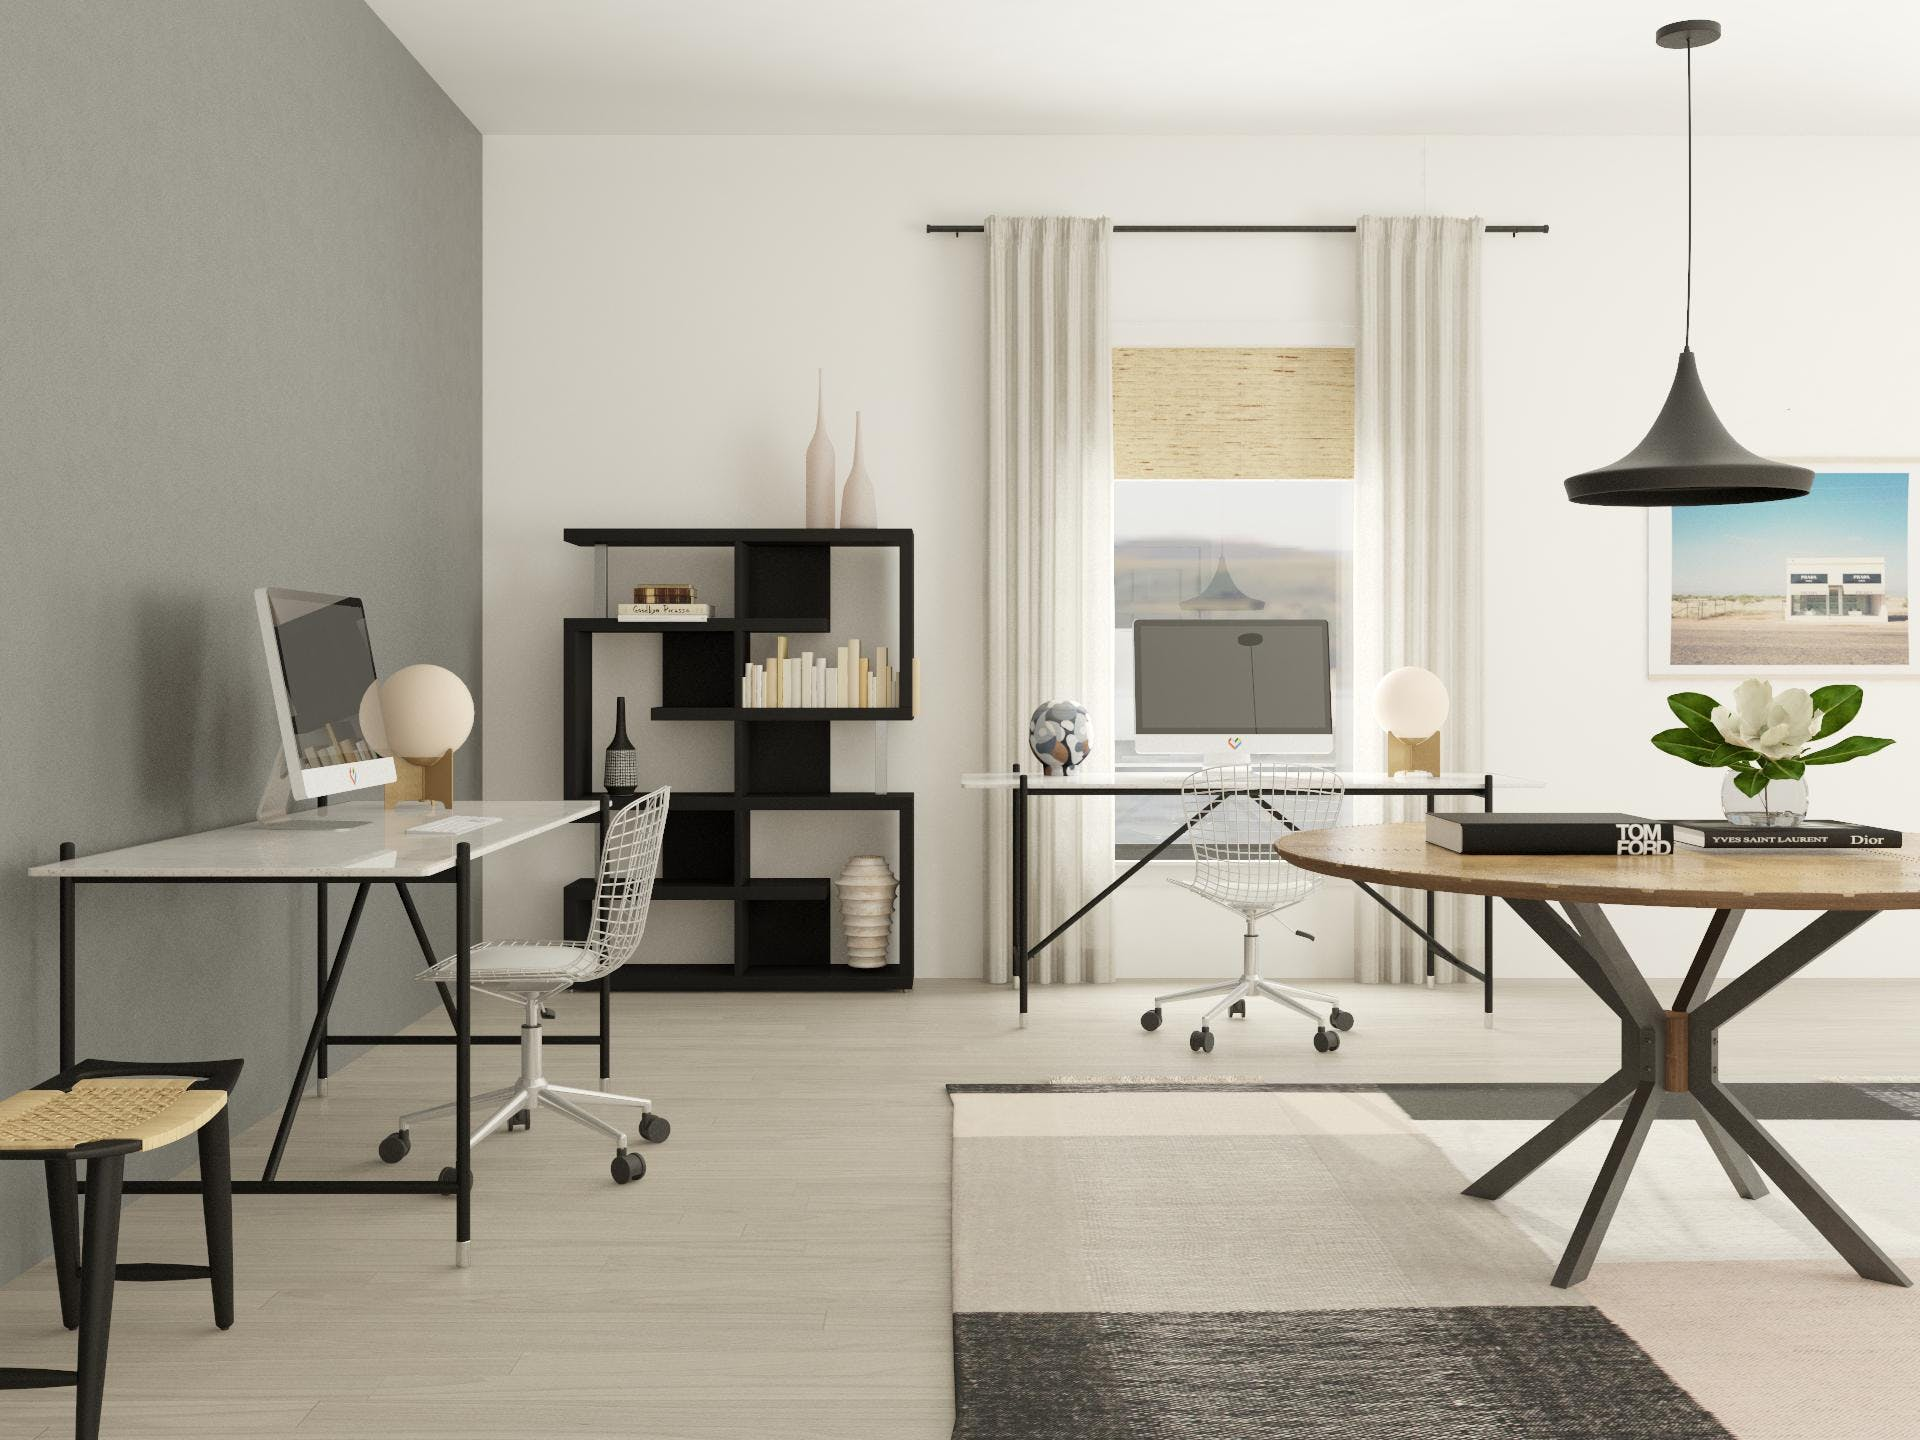 Multifunctional Shared Workspace in Dynamic Modern Style